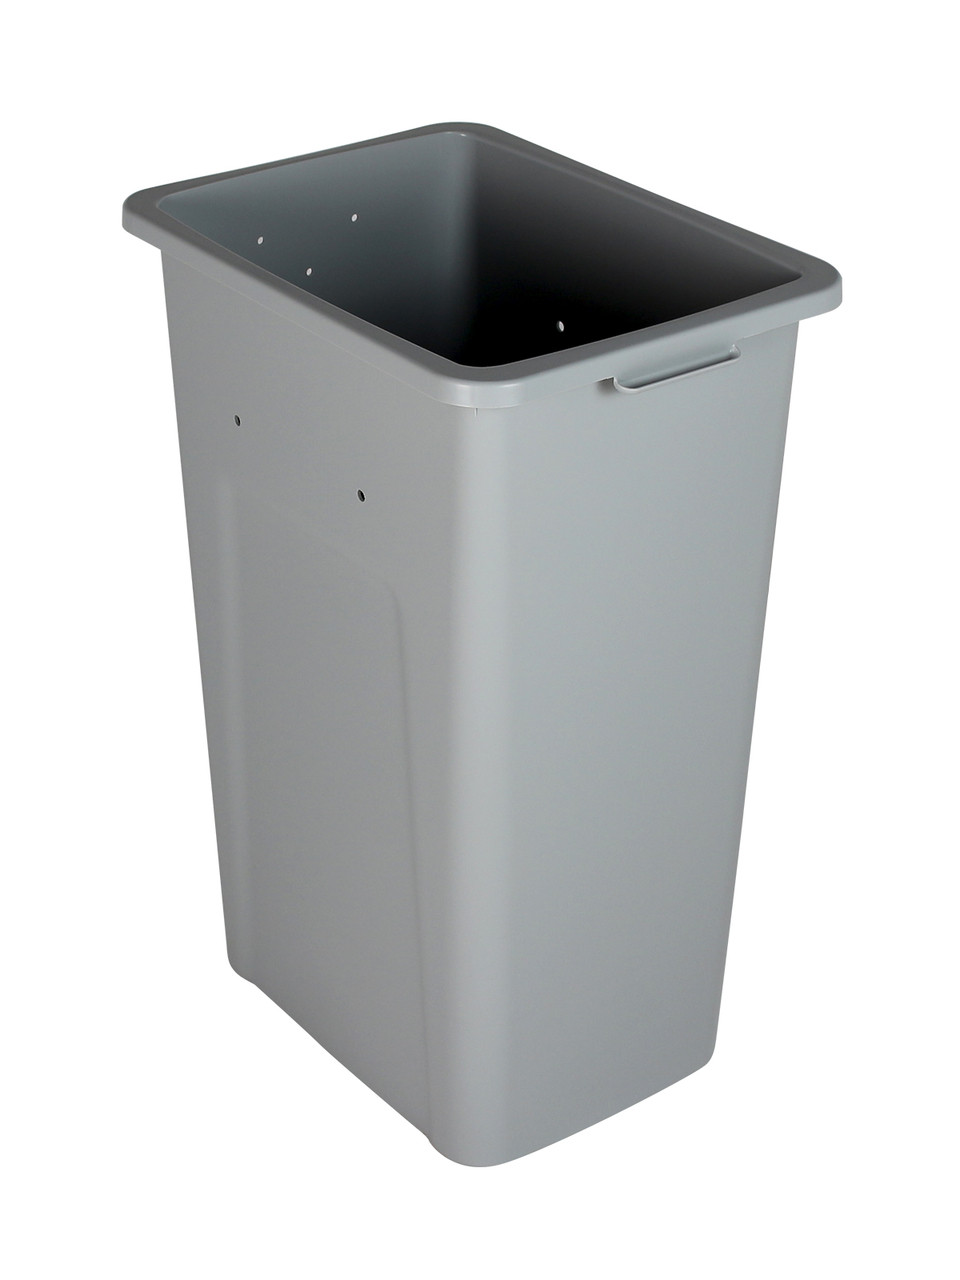 Colorful Garbage Cans 32 Gallon Extra Large Home Office Trash Can Or Recycling Bin 4 Colors